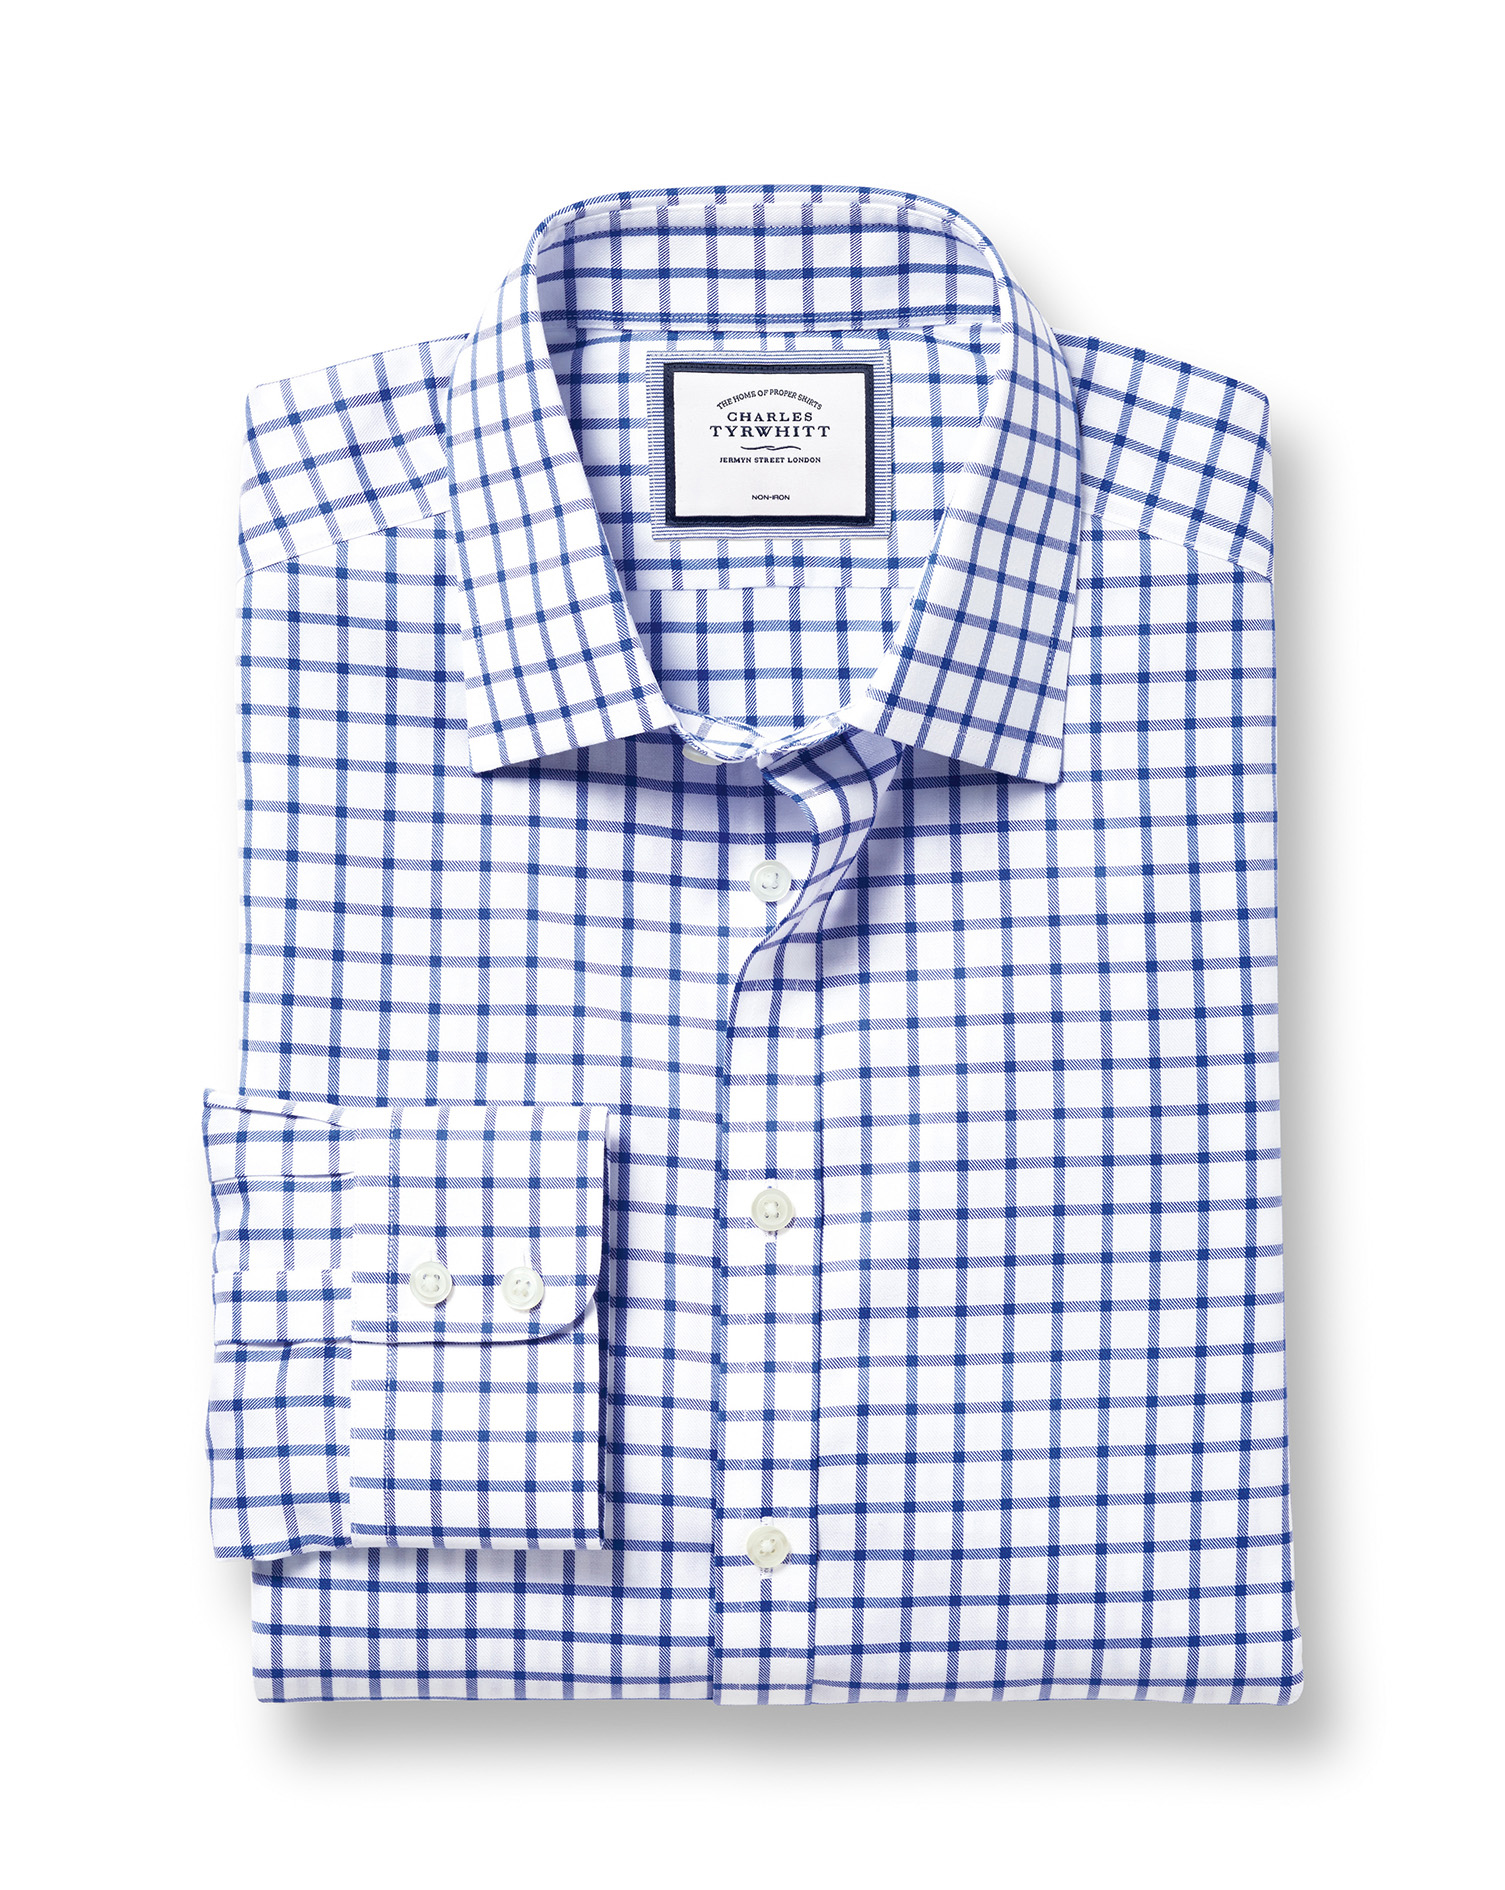 Classic fit non iron twill grid check royal blue shirt for Charles tyrwhitt shirts review